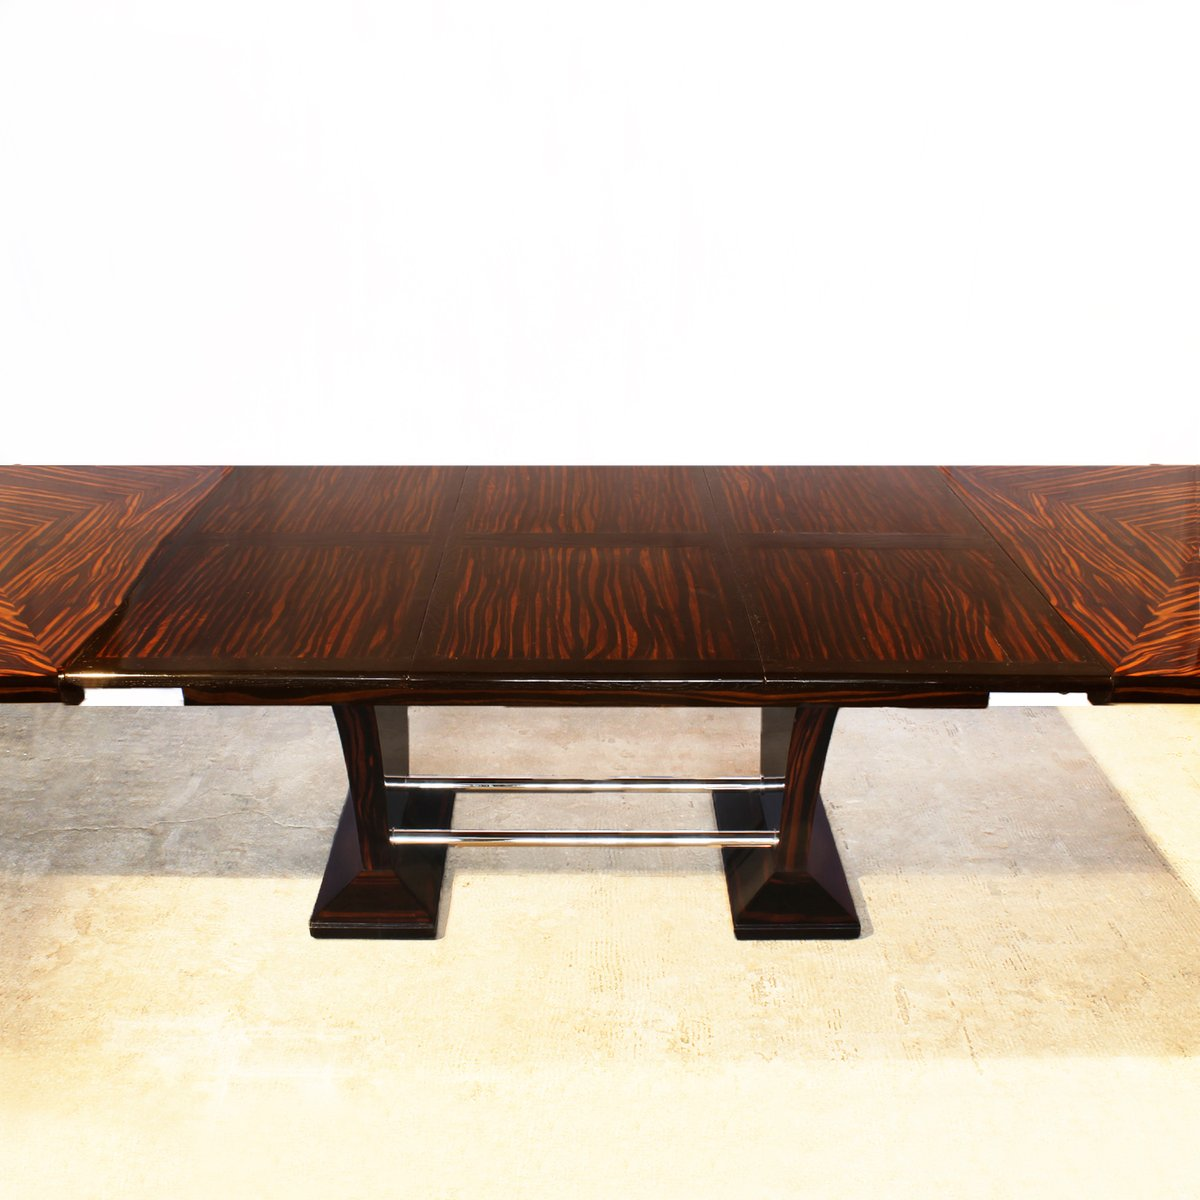 Art Deco Dining Table with Extension Leaves, 1930s for sale at Pamono